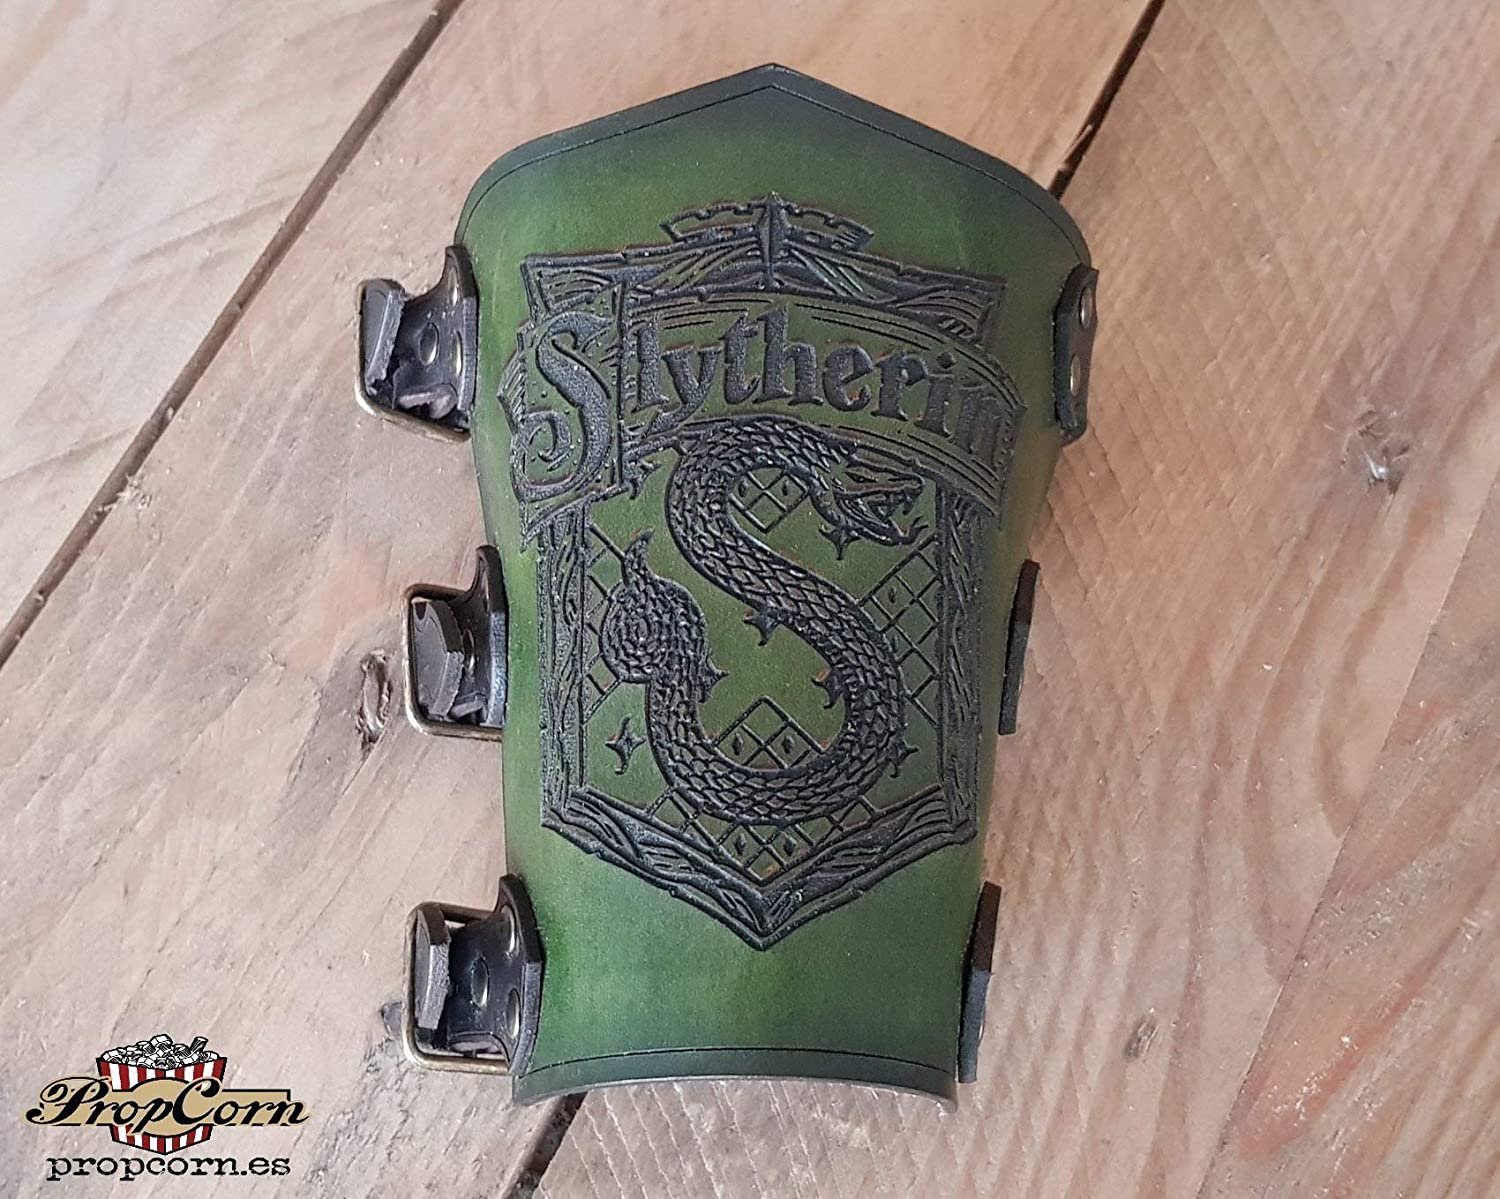 Harry Potter Slytherin Vambrace, ideal for Quidditch fans, made of high quality leather and with cinematografic look.